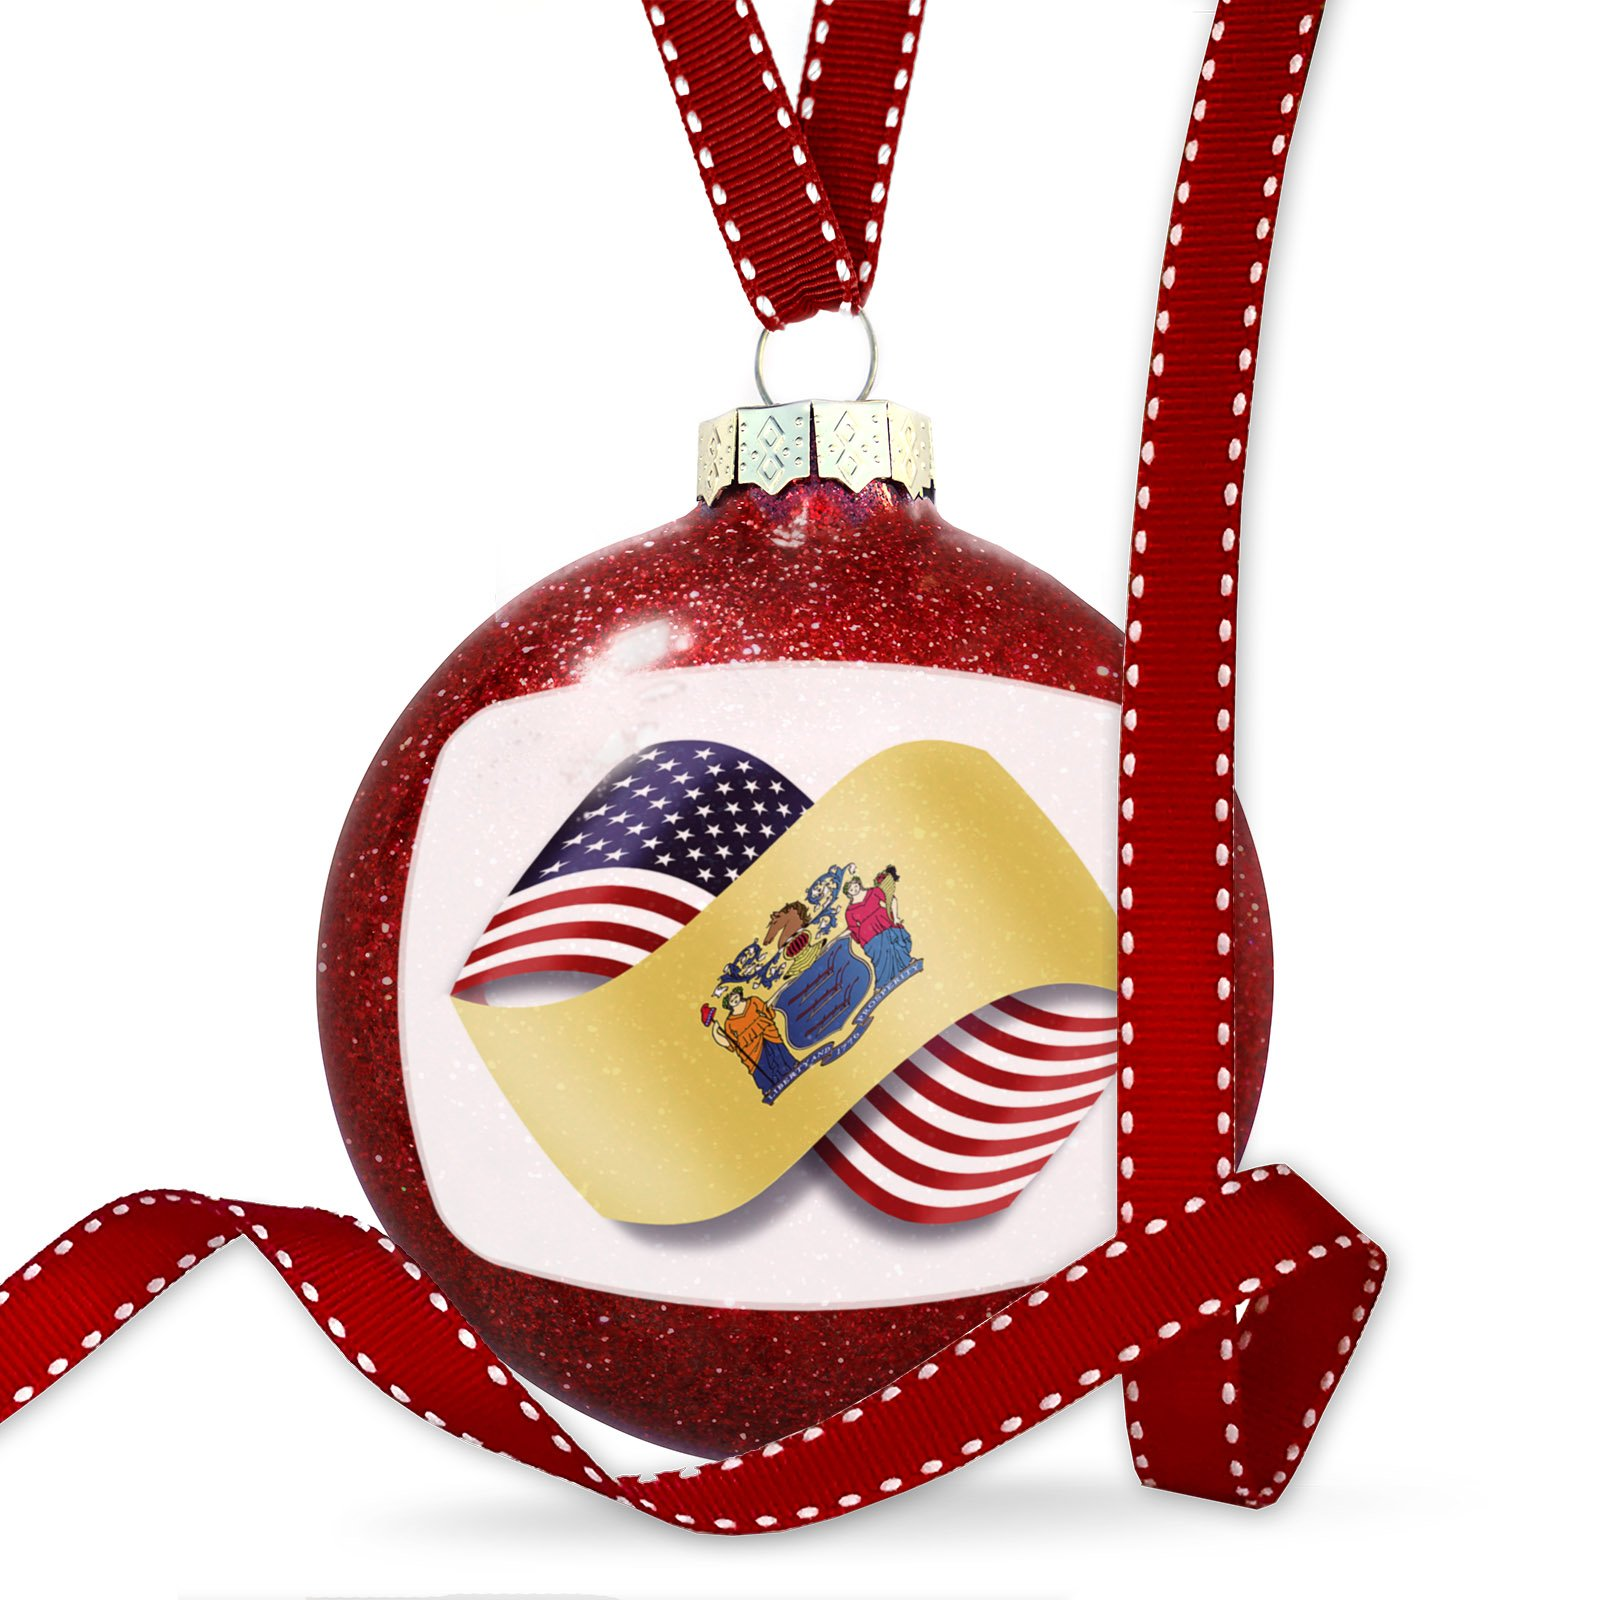 Christmas Decoration Infinity Flags USA and New Jersey region America (USA) Ornament